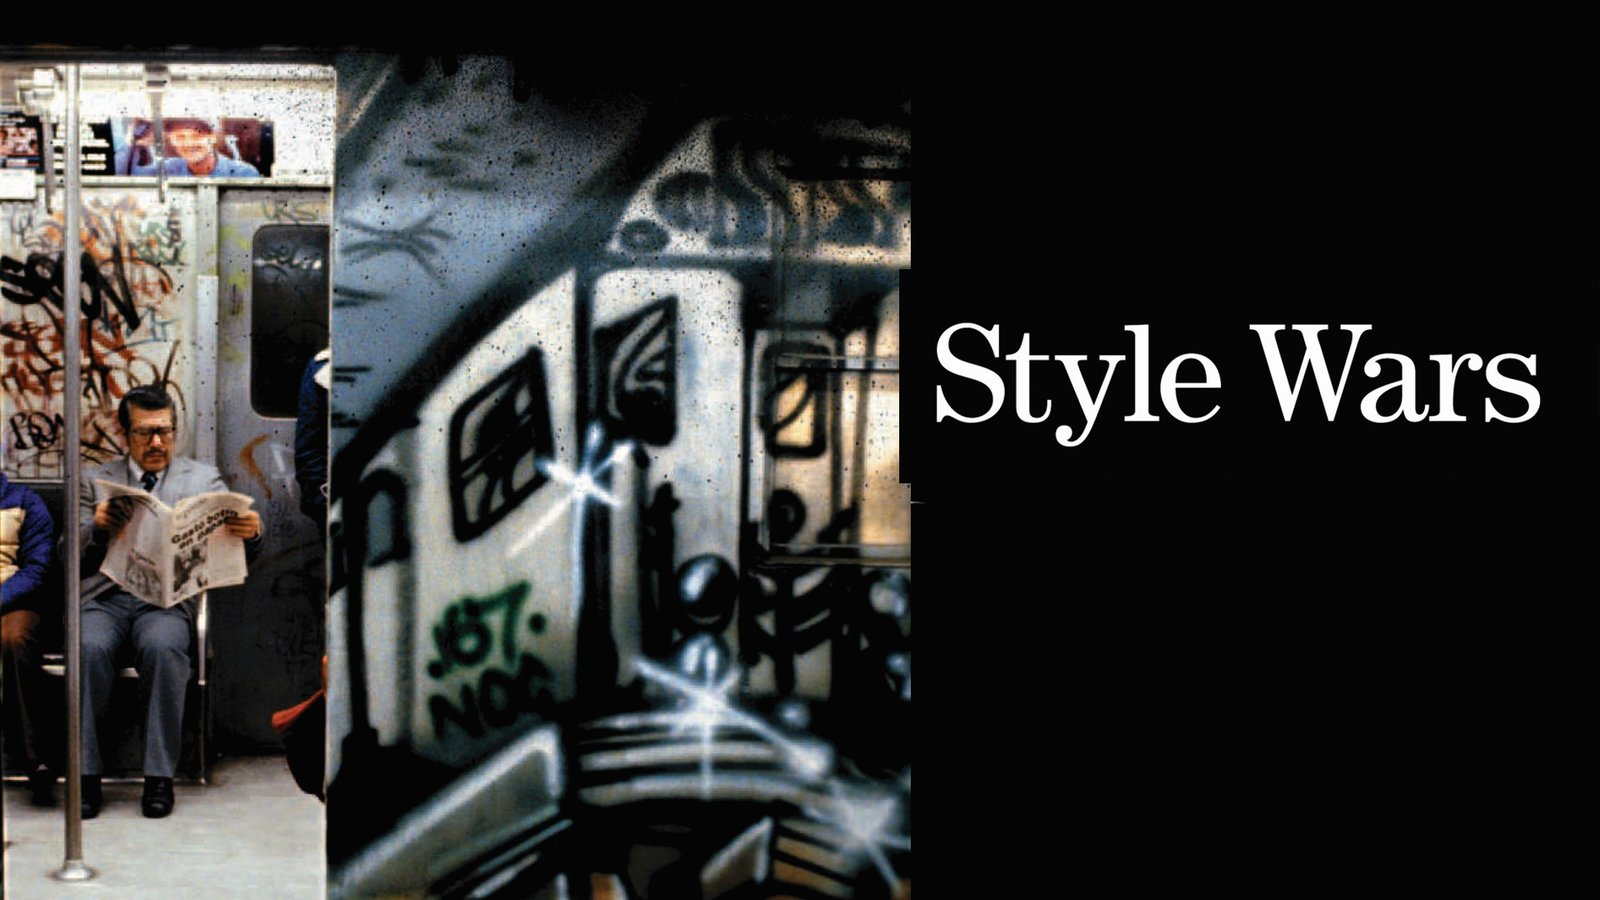 Style Wars - New York Graffiti Art and Breakdancing in the 1980s